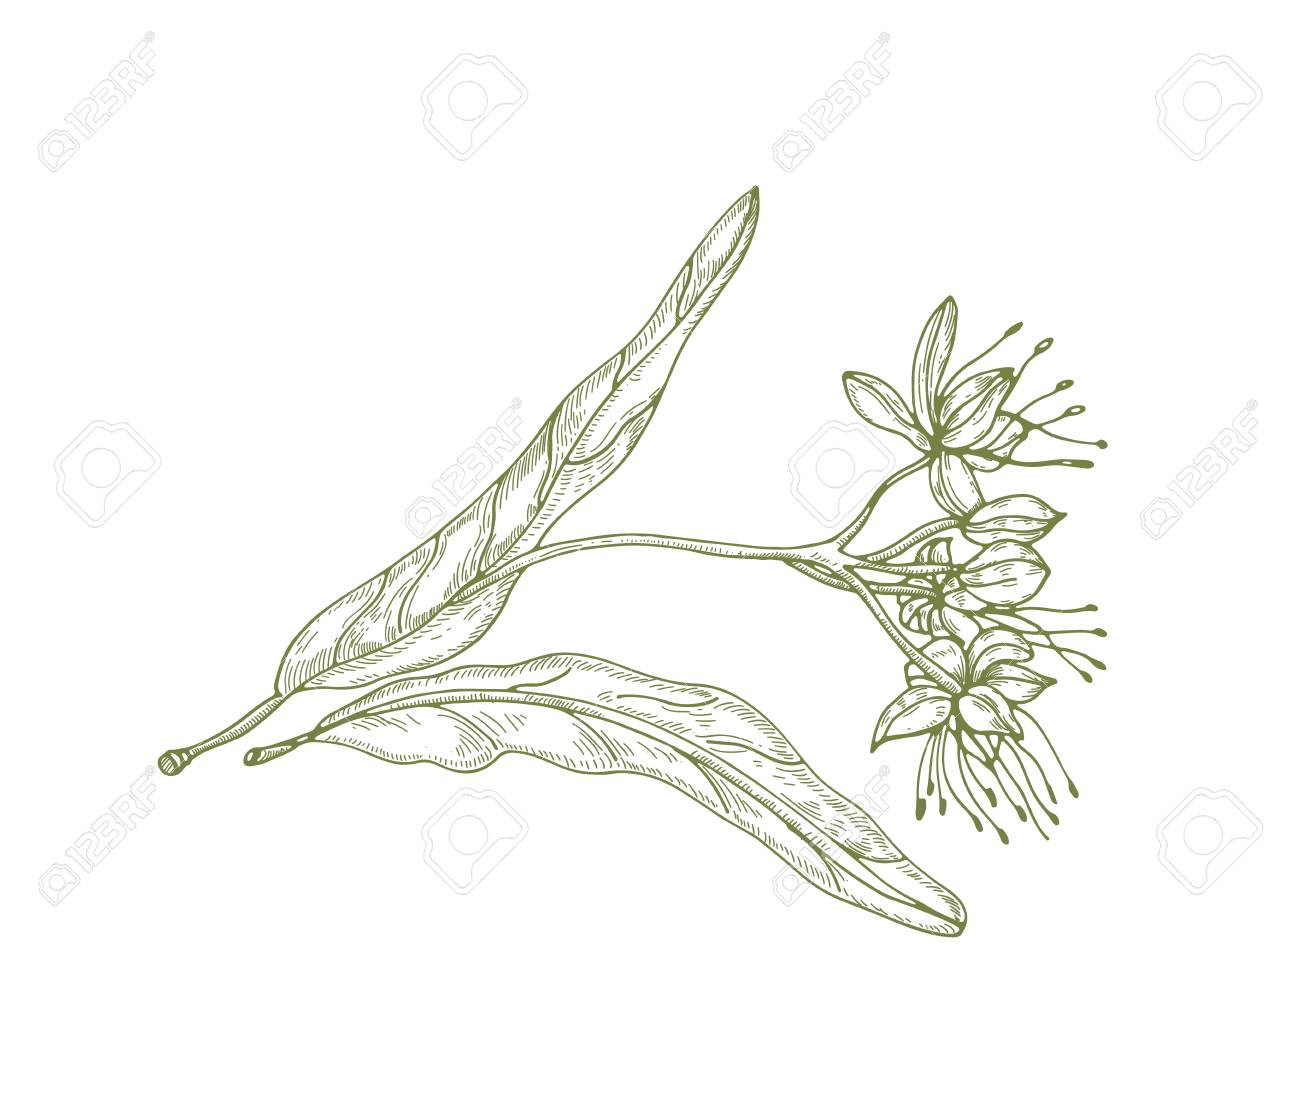 Gorgeous outline drawing of linden leaves and flowers or inflorescence. Beautiful tree part used in phytotherapy drawn with contour lines on white background. Elegant natural vector illustration - 117296062